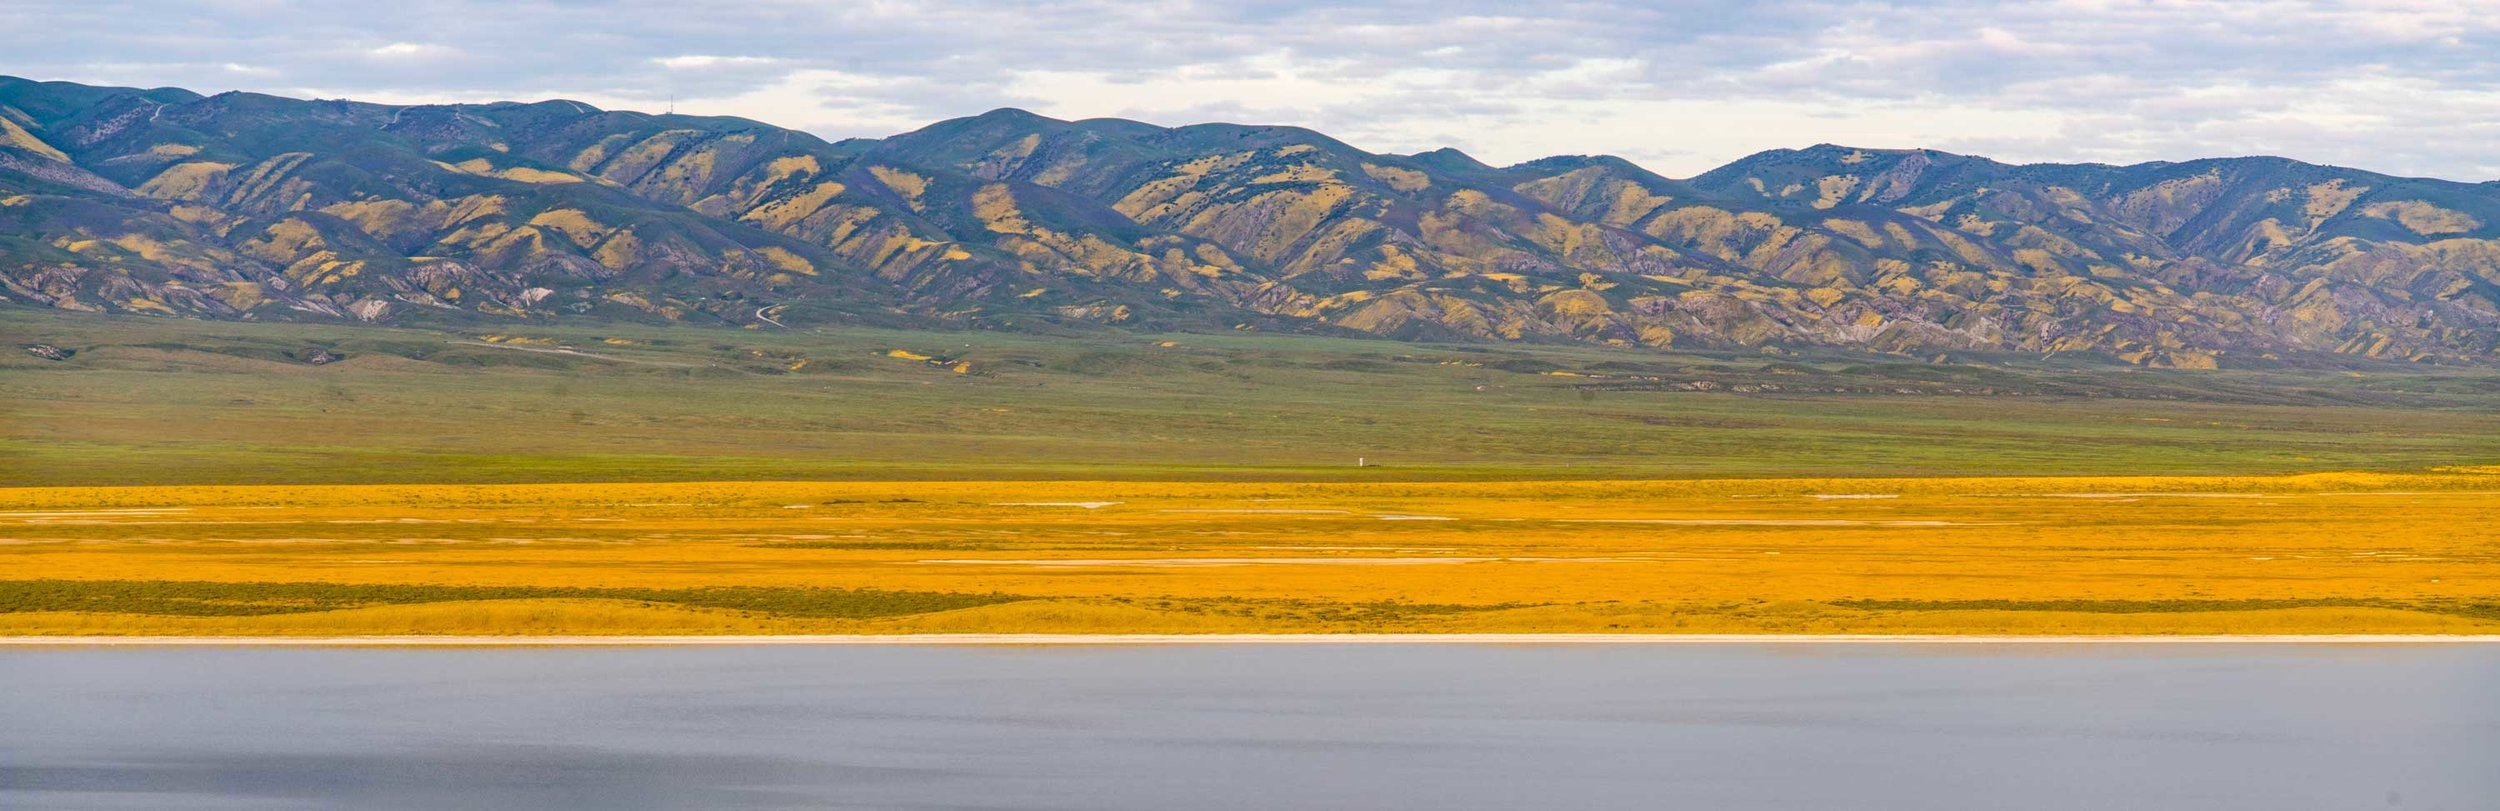 Layers of wildflowers cover the plains and mountains at Soda Lake in San Bernardino County, CA.